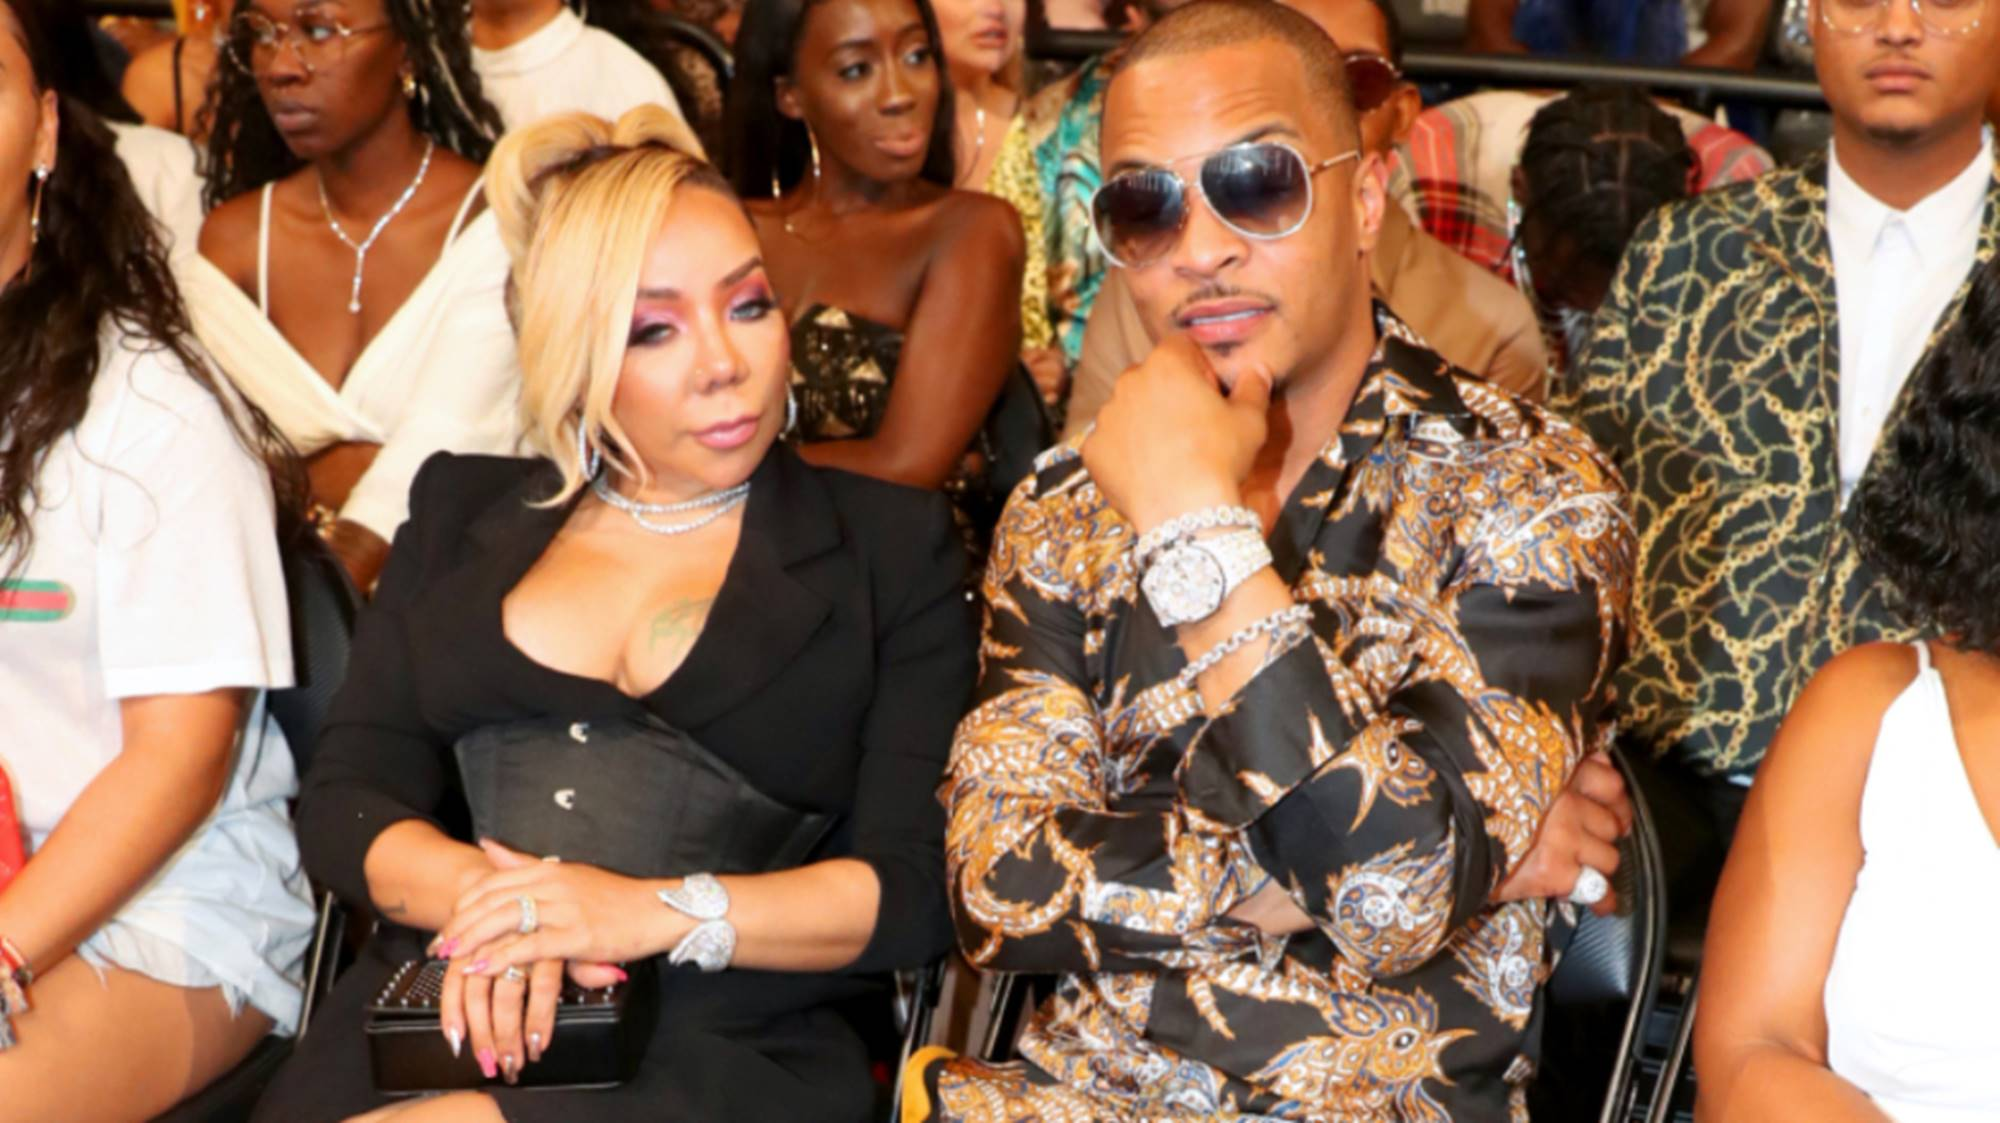 T.I. Has Some Things To Say To Sabrina Peterson – Check Out His Messages